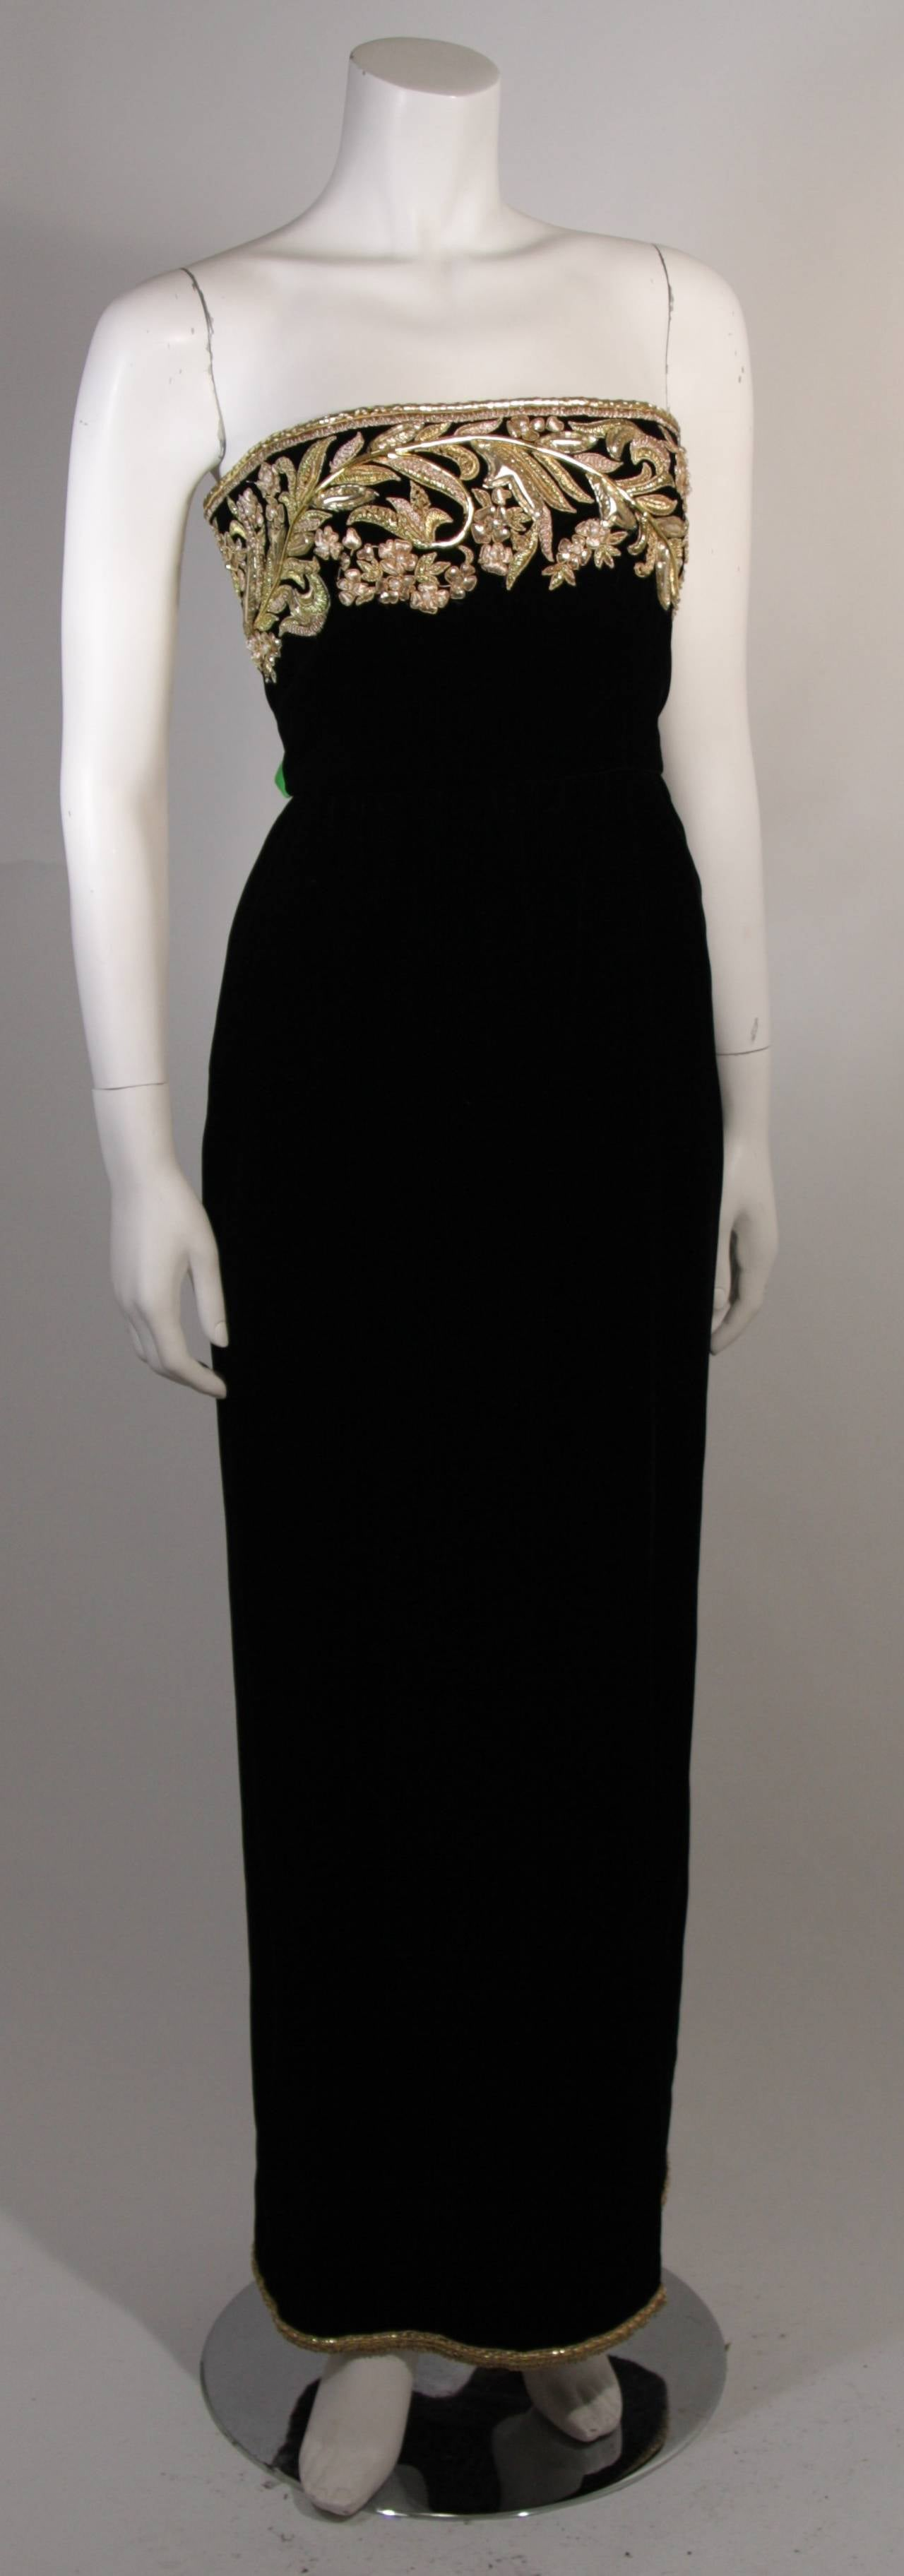 Oscar De La Renta Black Velvet Gown with Metallic Embellishments 2